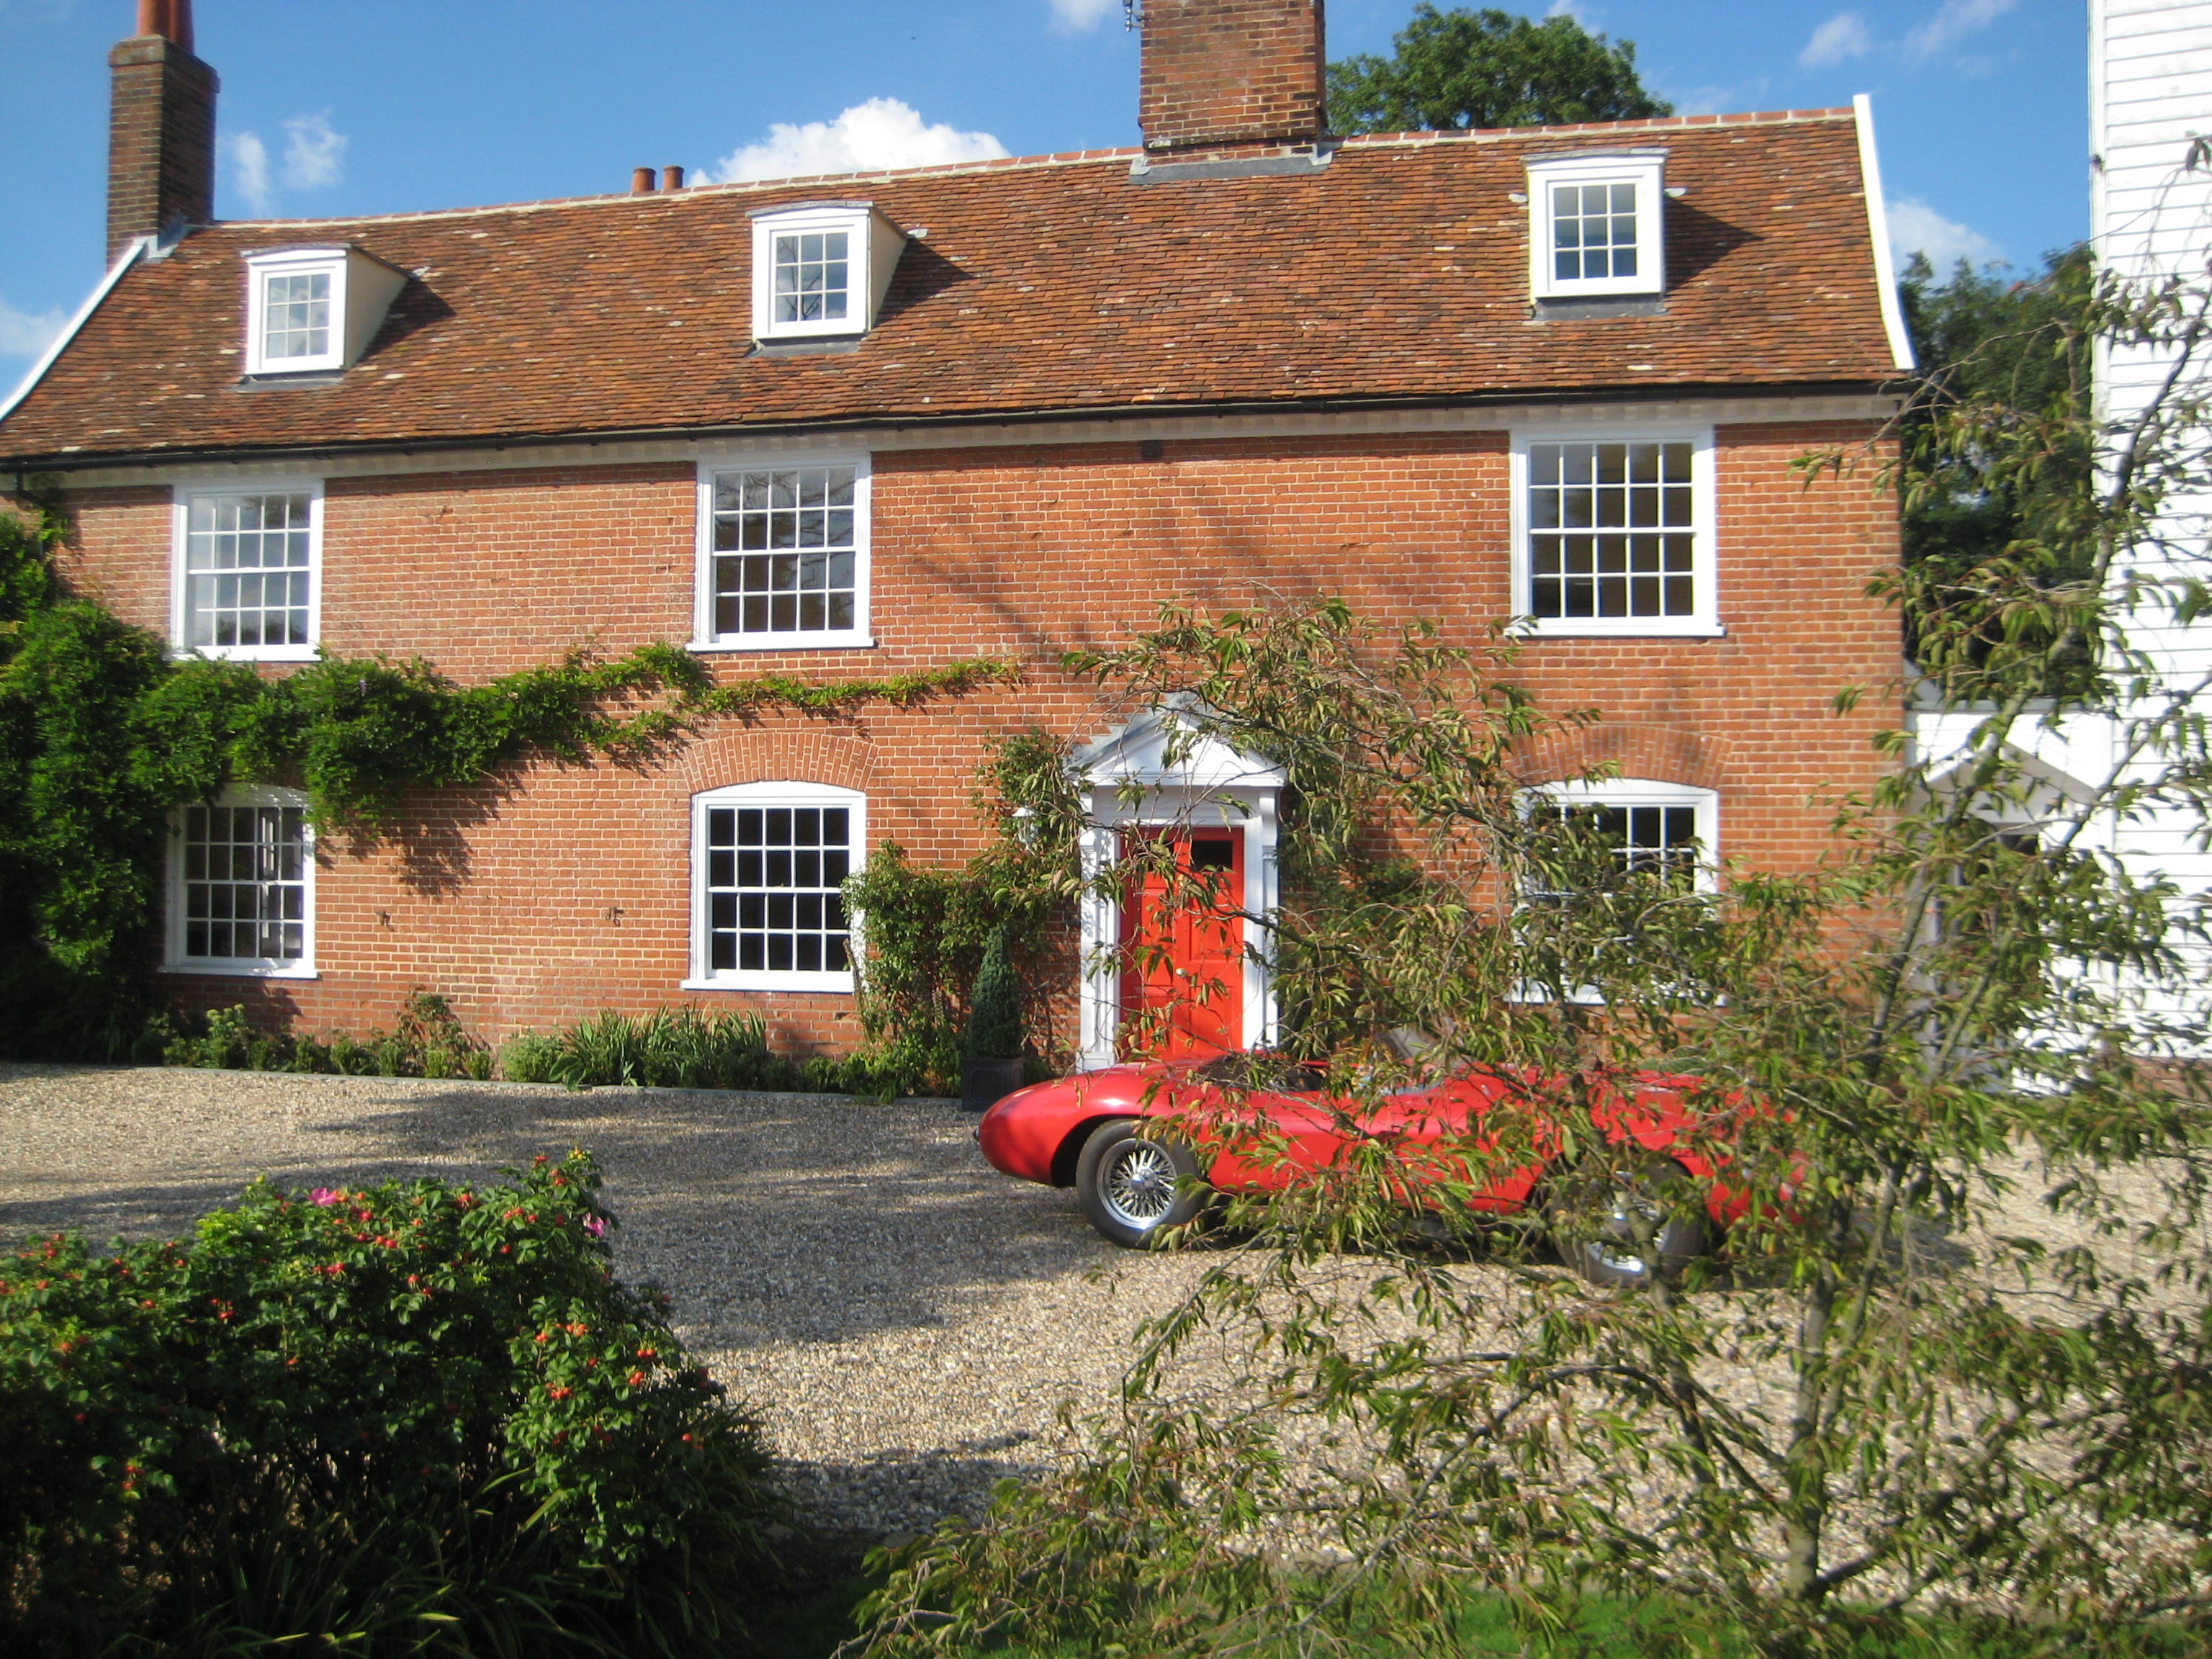 Kersey Mill view of the house